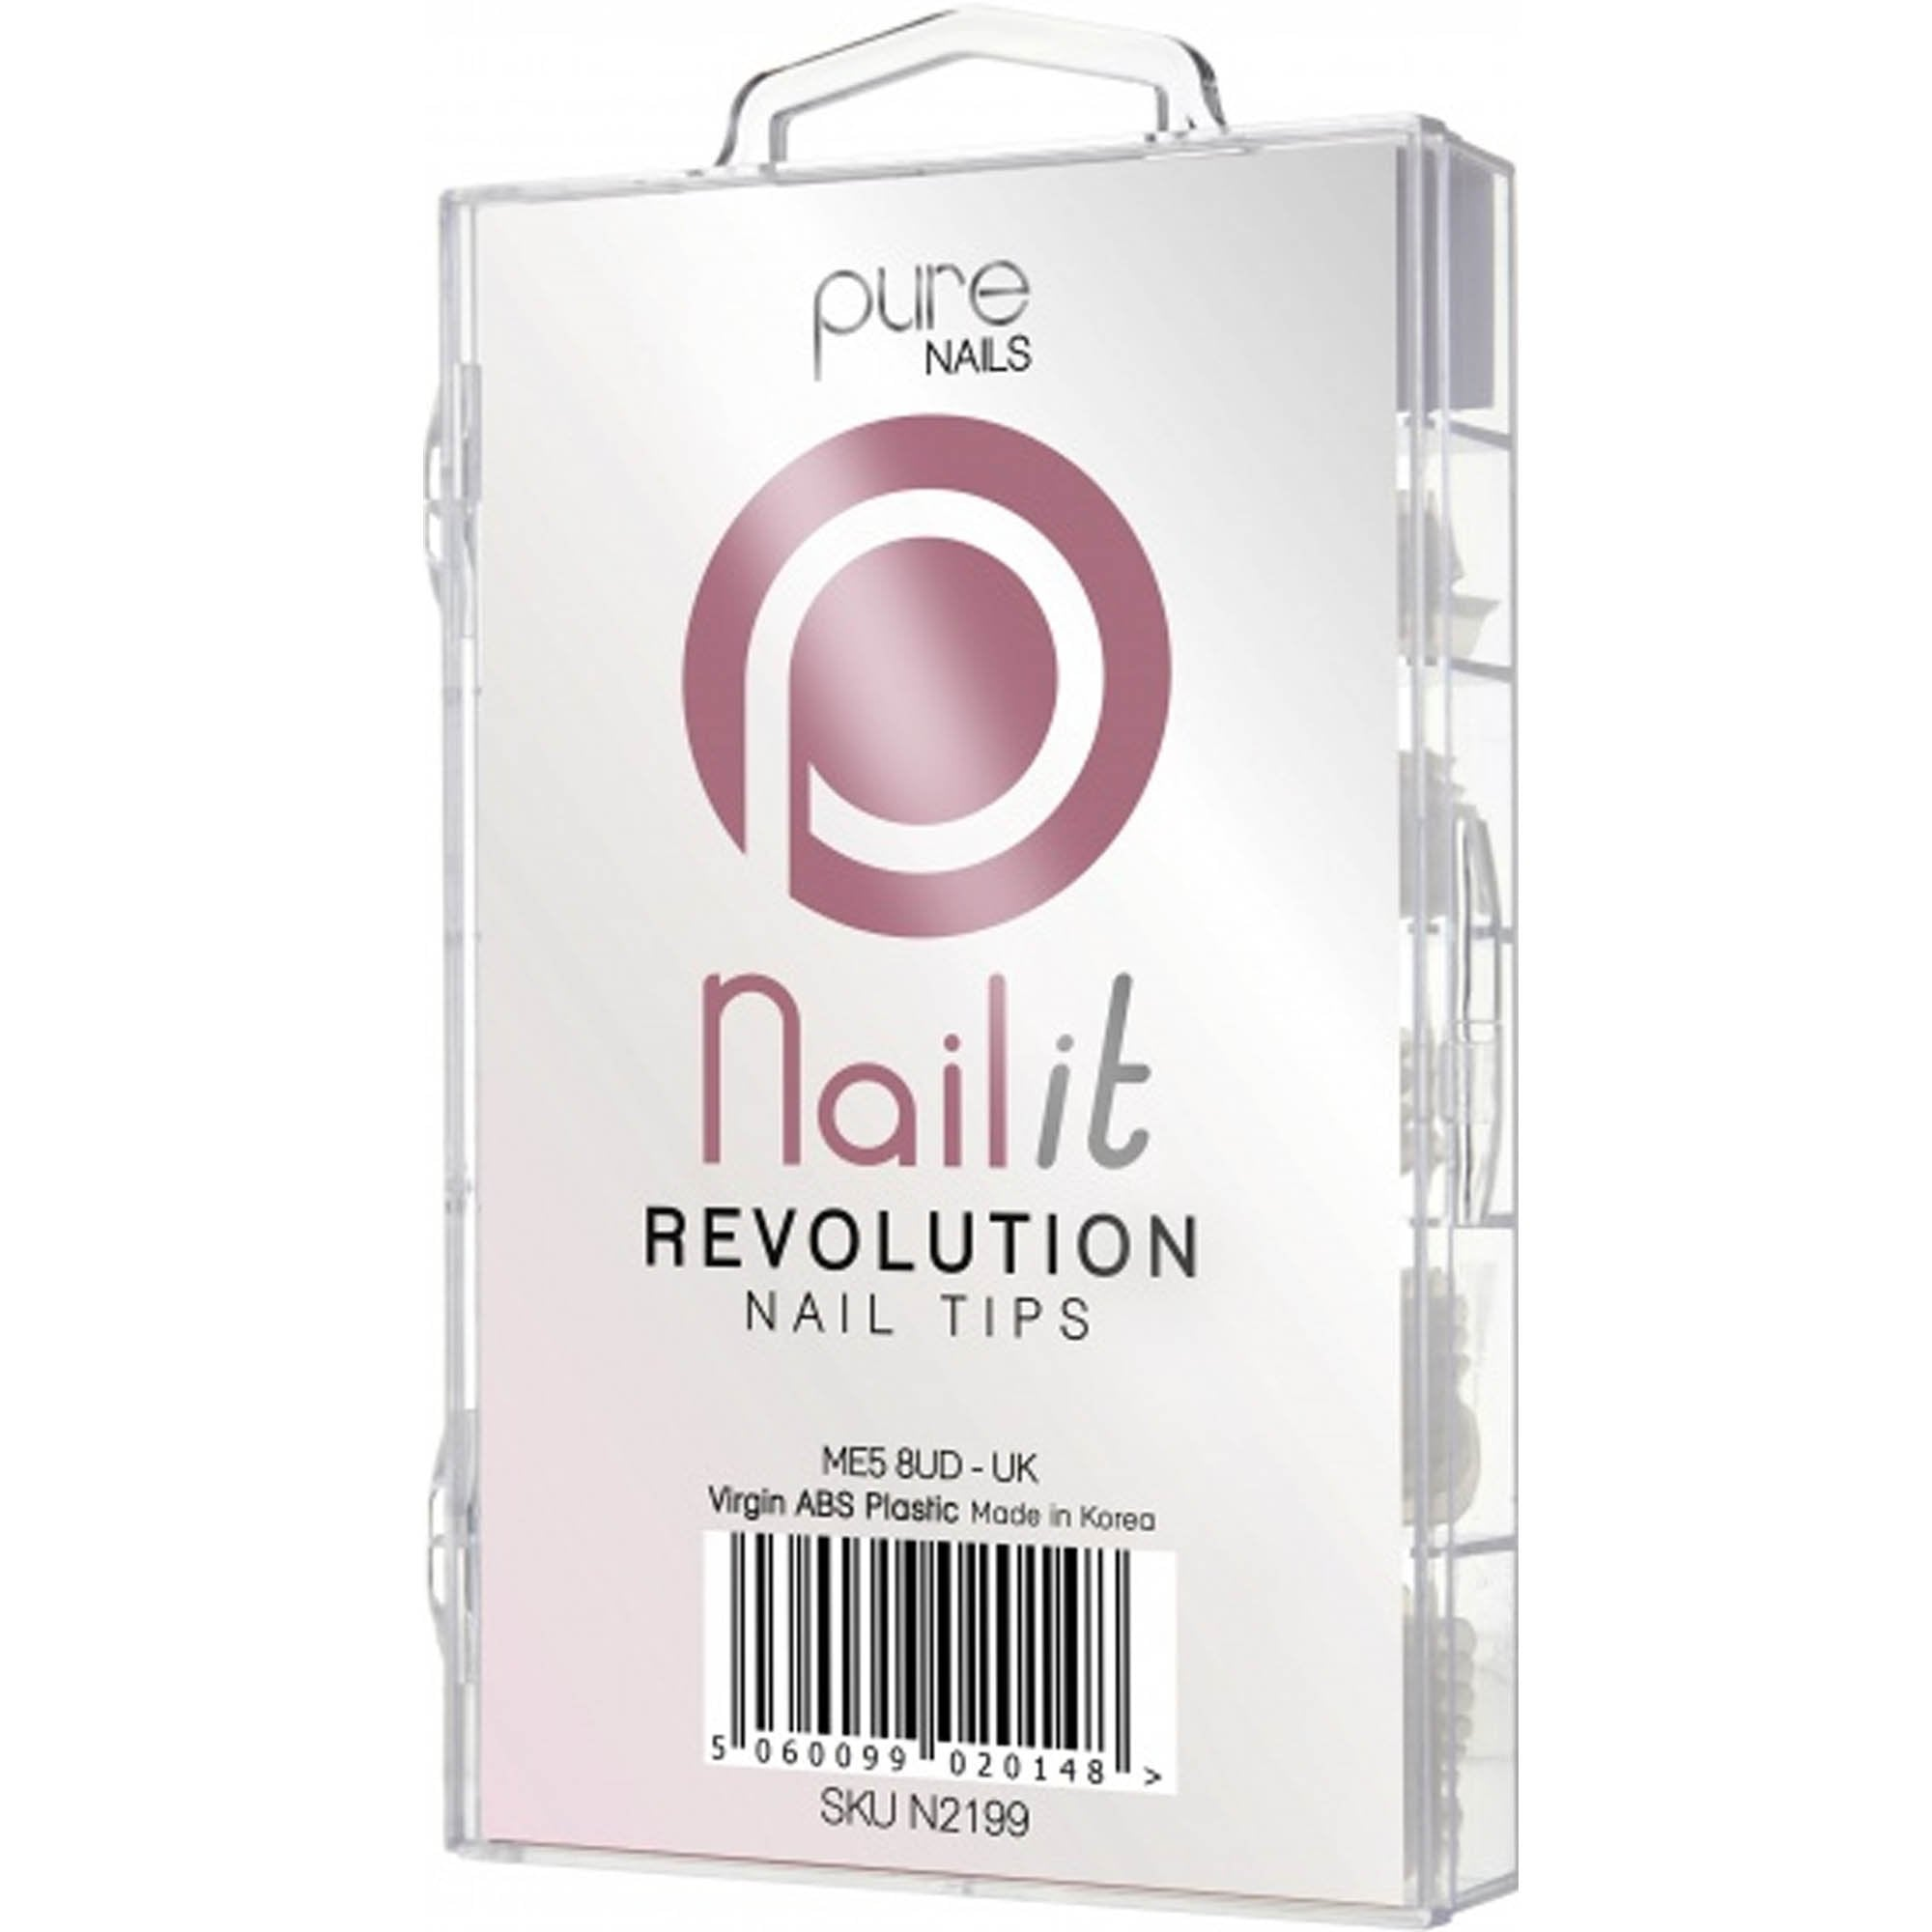 Pure Nails Revolution Nail Tips Mixed 100 St